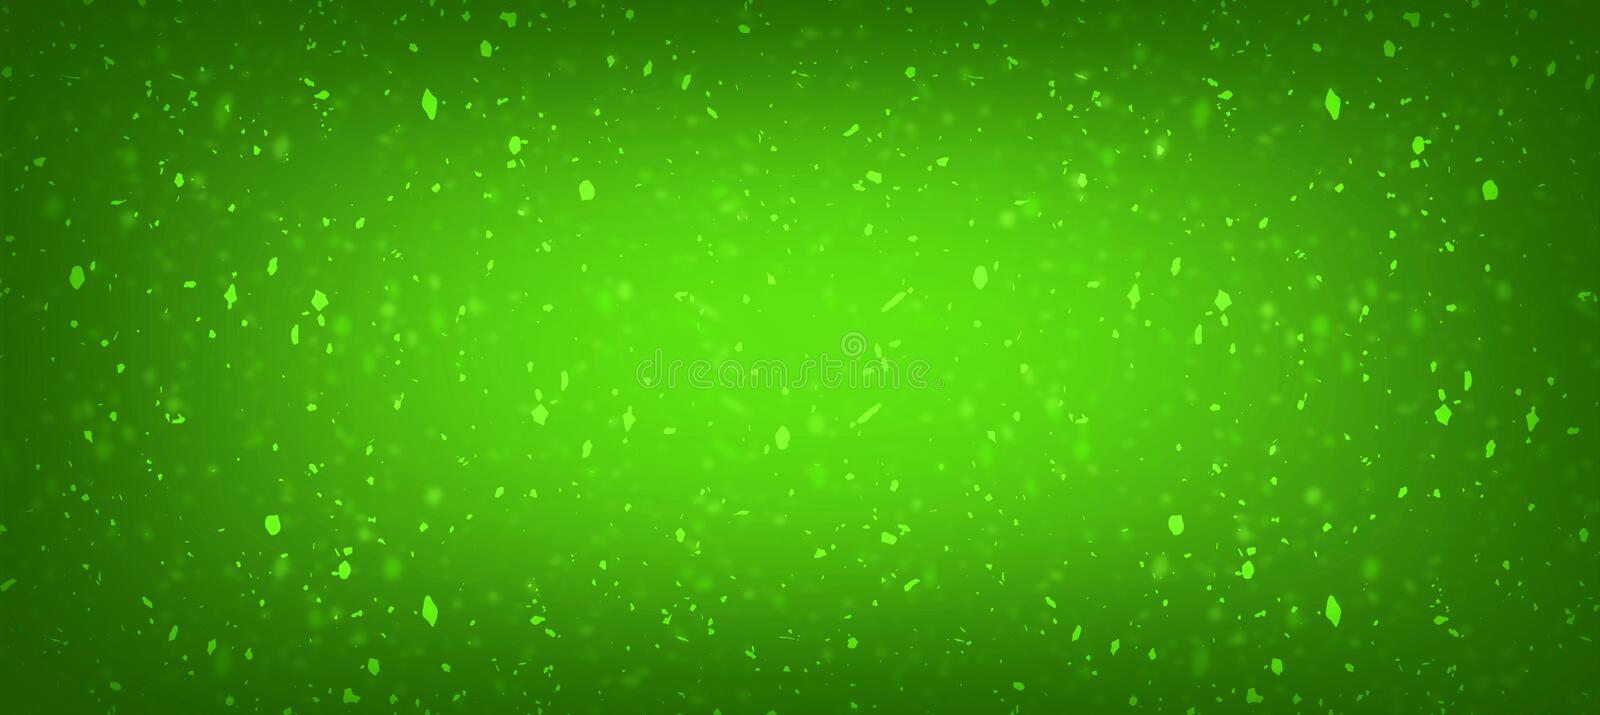 Abstract green background Green  luxury rich vintage grunge background texture design with elegant antique paint on wall illust royalty free stock photo